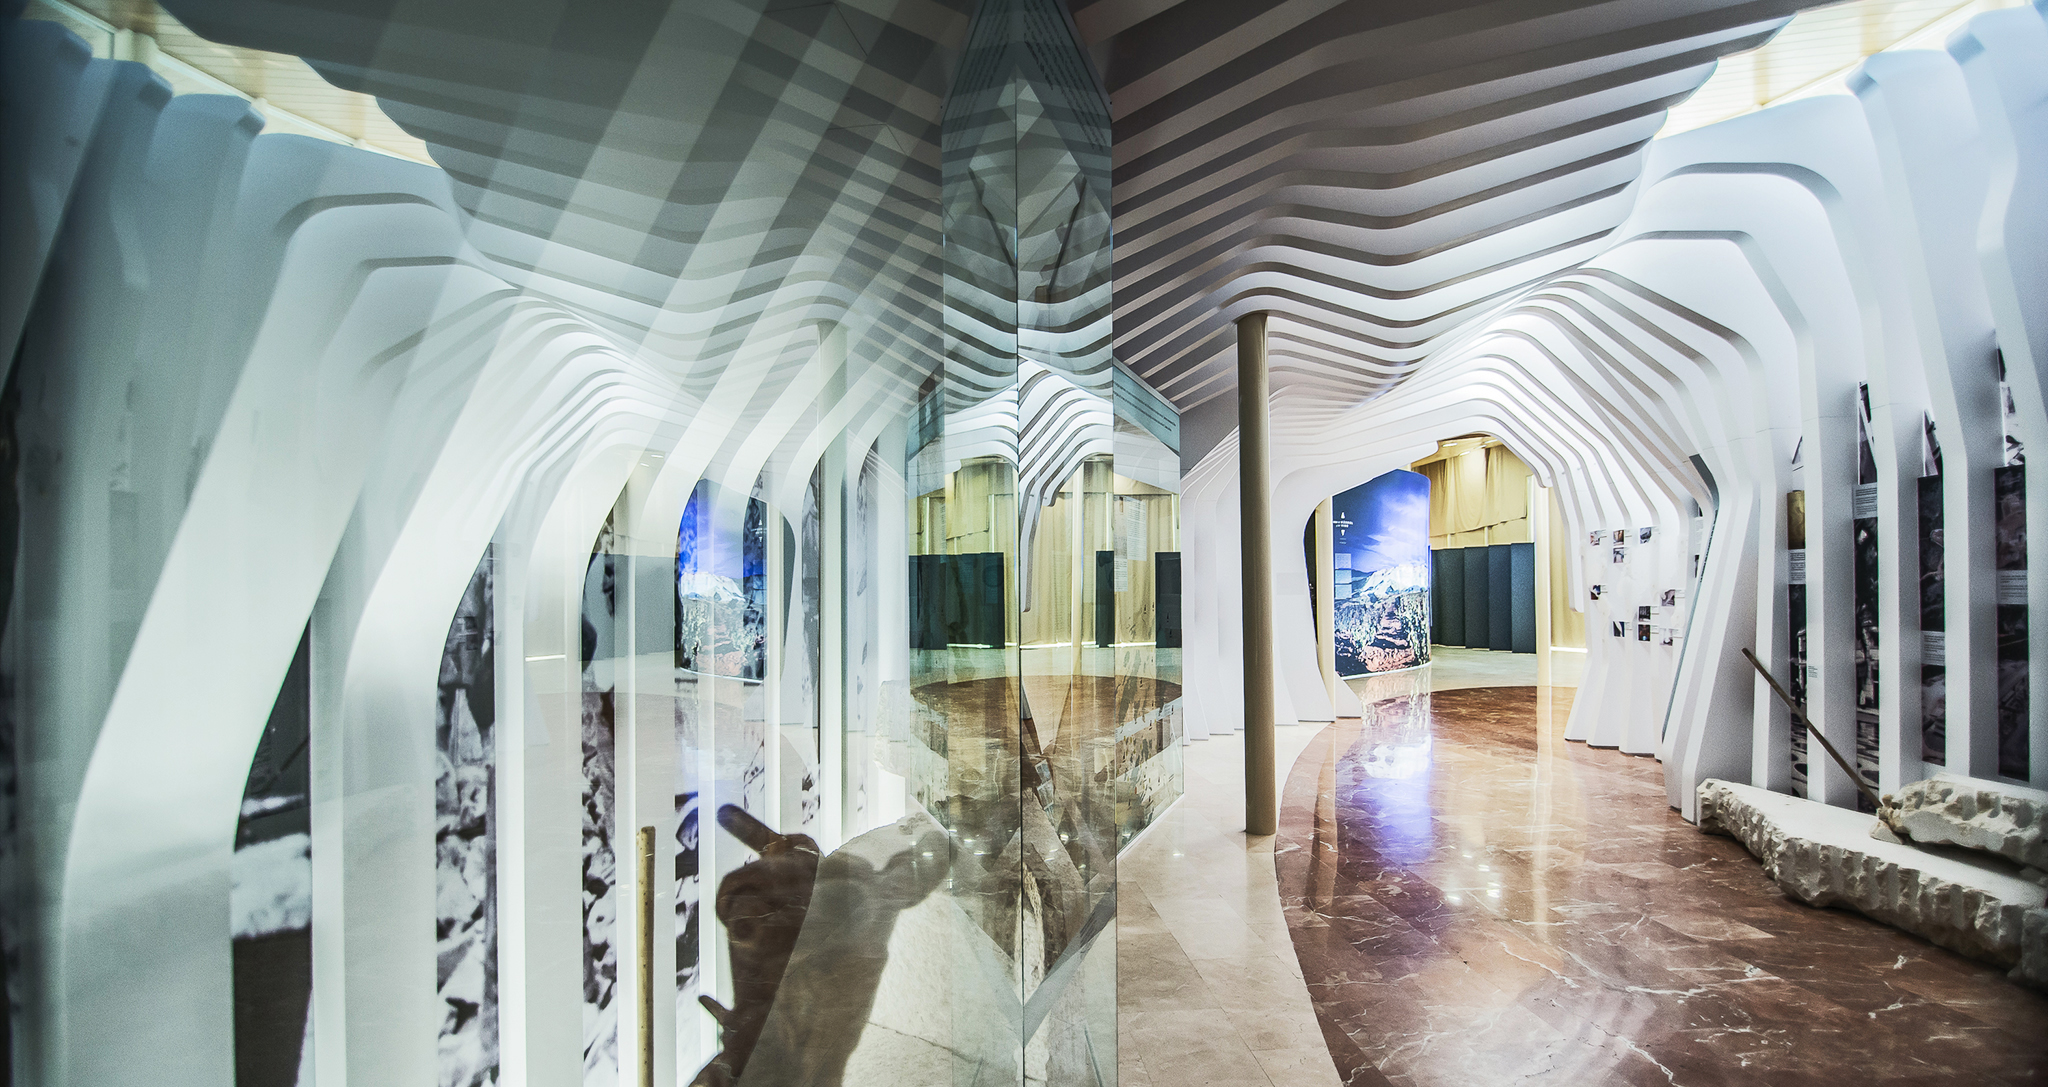 DESIGN PERMANENT EXHIBITION LEVANTINE MARBLE AND TRADITION IN PINES BY ROCAMORA ARCHITECTURE ELCHE ALICANTE SPAIN